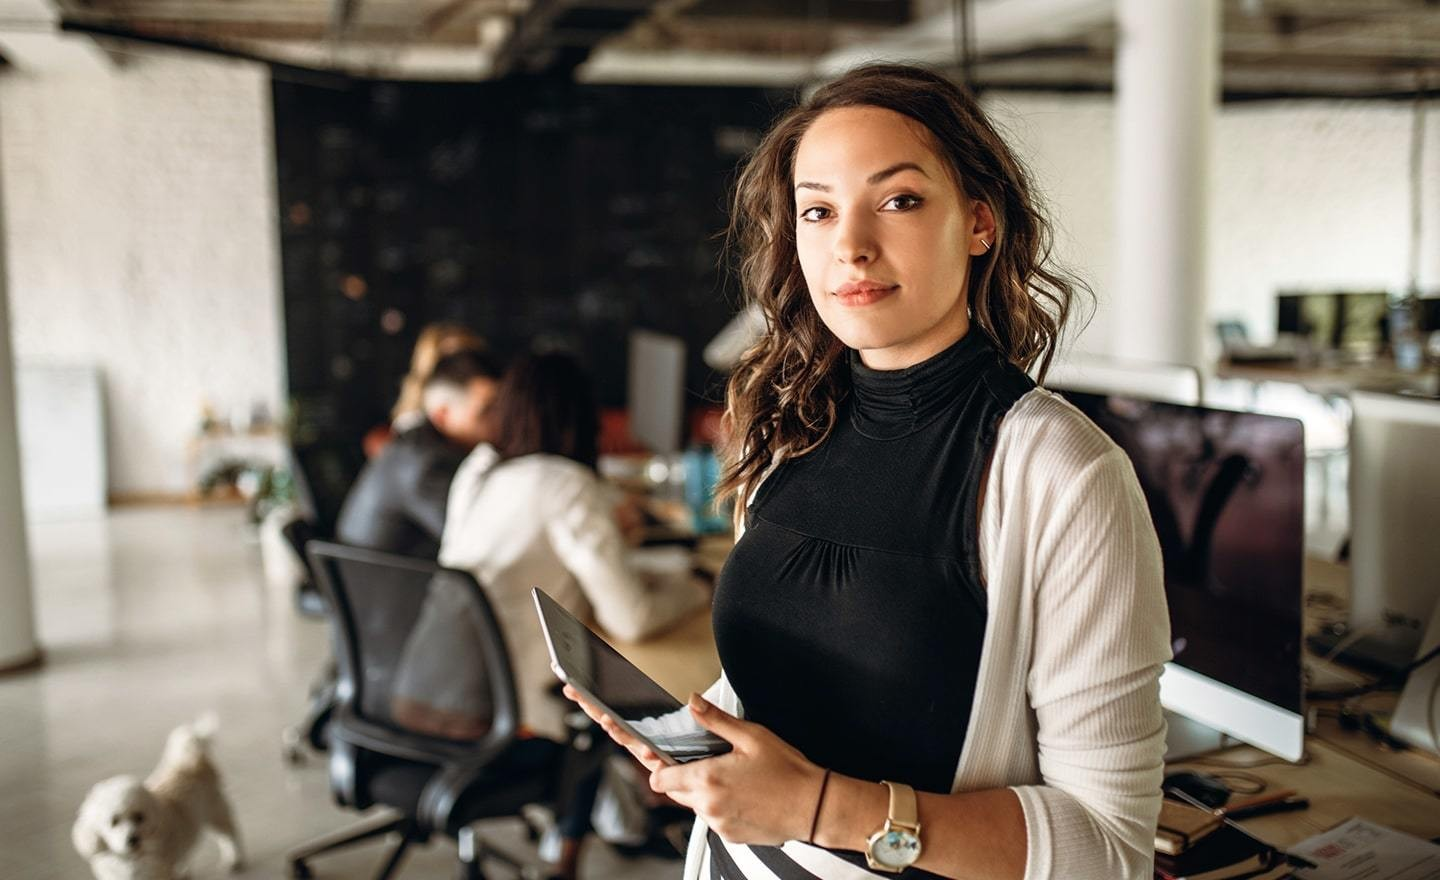 Woman in office holding iPad